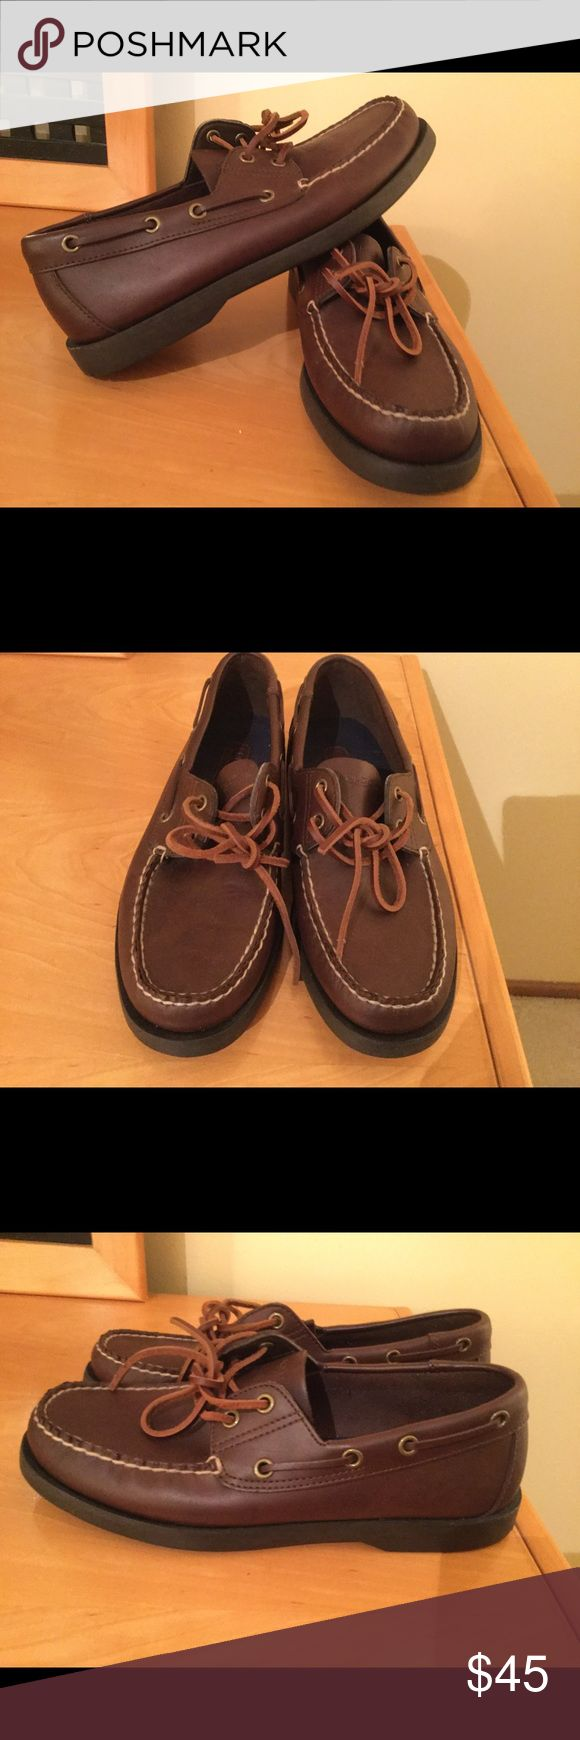 New Polo Ralp Lauren brown leather men's shoes New with out box Polo Ralph Lauren Sport brown leather men's boat shoes Sz 8D ( women's 10) . No box. Price firm ! Polo by Ralph Lauren Shoes Flats & Loafers